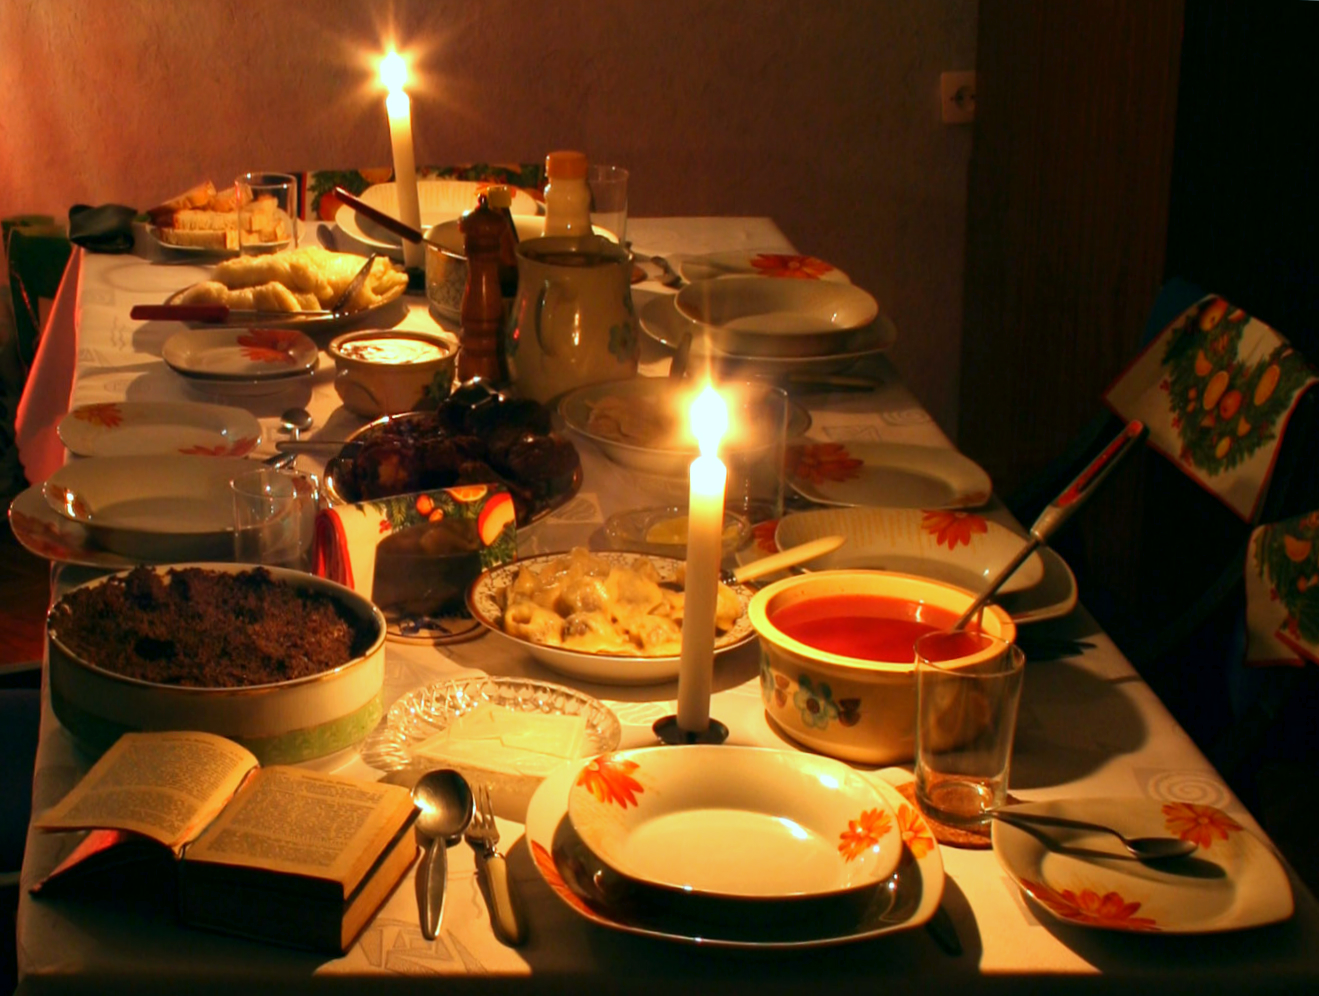 Traditional setting of the Christmas Eve table in Poland. Wigilia is the traditional Christmas Eve vigil supper, following a day of abstinence and traditionally begininng once the First Star has been sighted. The meal excludes meat, as abstinence is required and should comprise twelve distinct dishes in memory of the twelve Apostles. It begins with a soup, either Borscht with Uszka (tortellini), or wild mushroom consommé, followed by herring in different forms. Fish provides the main dish of the Christmas Eve feast across Poland. There are variations of carp fillet, carp in aspic, gefilte fish (Jewish-style carp), sweet with onions, carrots, almonds and raisins. Accompaniments consist of cabbage, cooked red or Sauerkraut with apple salad. The bread served at the meal is often Challah, doubtless borrowed from Poland's centuries long Jewish fellow countrymen. Then there is an array of desserts, including, dried fruit compote, followed by cake: poppy seed cakes, Babka (cake), (makowiec), and other delicacies including edible Christmas ornaments. Regional variants include, żurek (sour rye soup), siemieniotka (in Silesia), Kulebiak, pierogi filled with cheese and potatoes as well mushrooms and cabbage, stuffed cabbage with mushrooms and rice gołąbki (cabbage rolls), kluski with poppyseed, and makówki (in Silesia). There is in places a belief that whatever happens on Wigilia affects the incoming year; if a quarrel should arise, it foretells a quarrelsome and troublesome year.